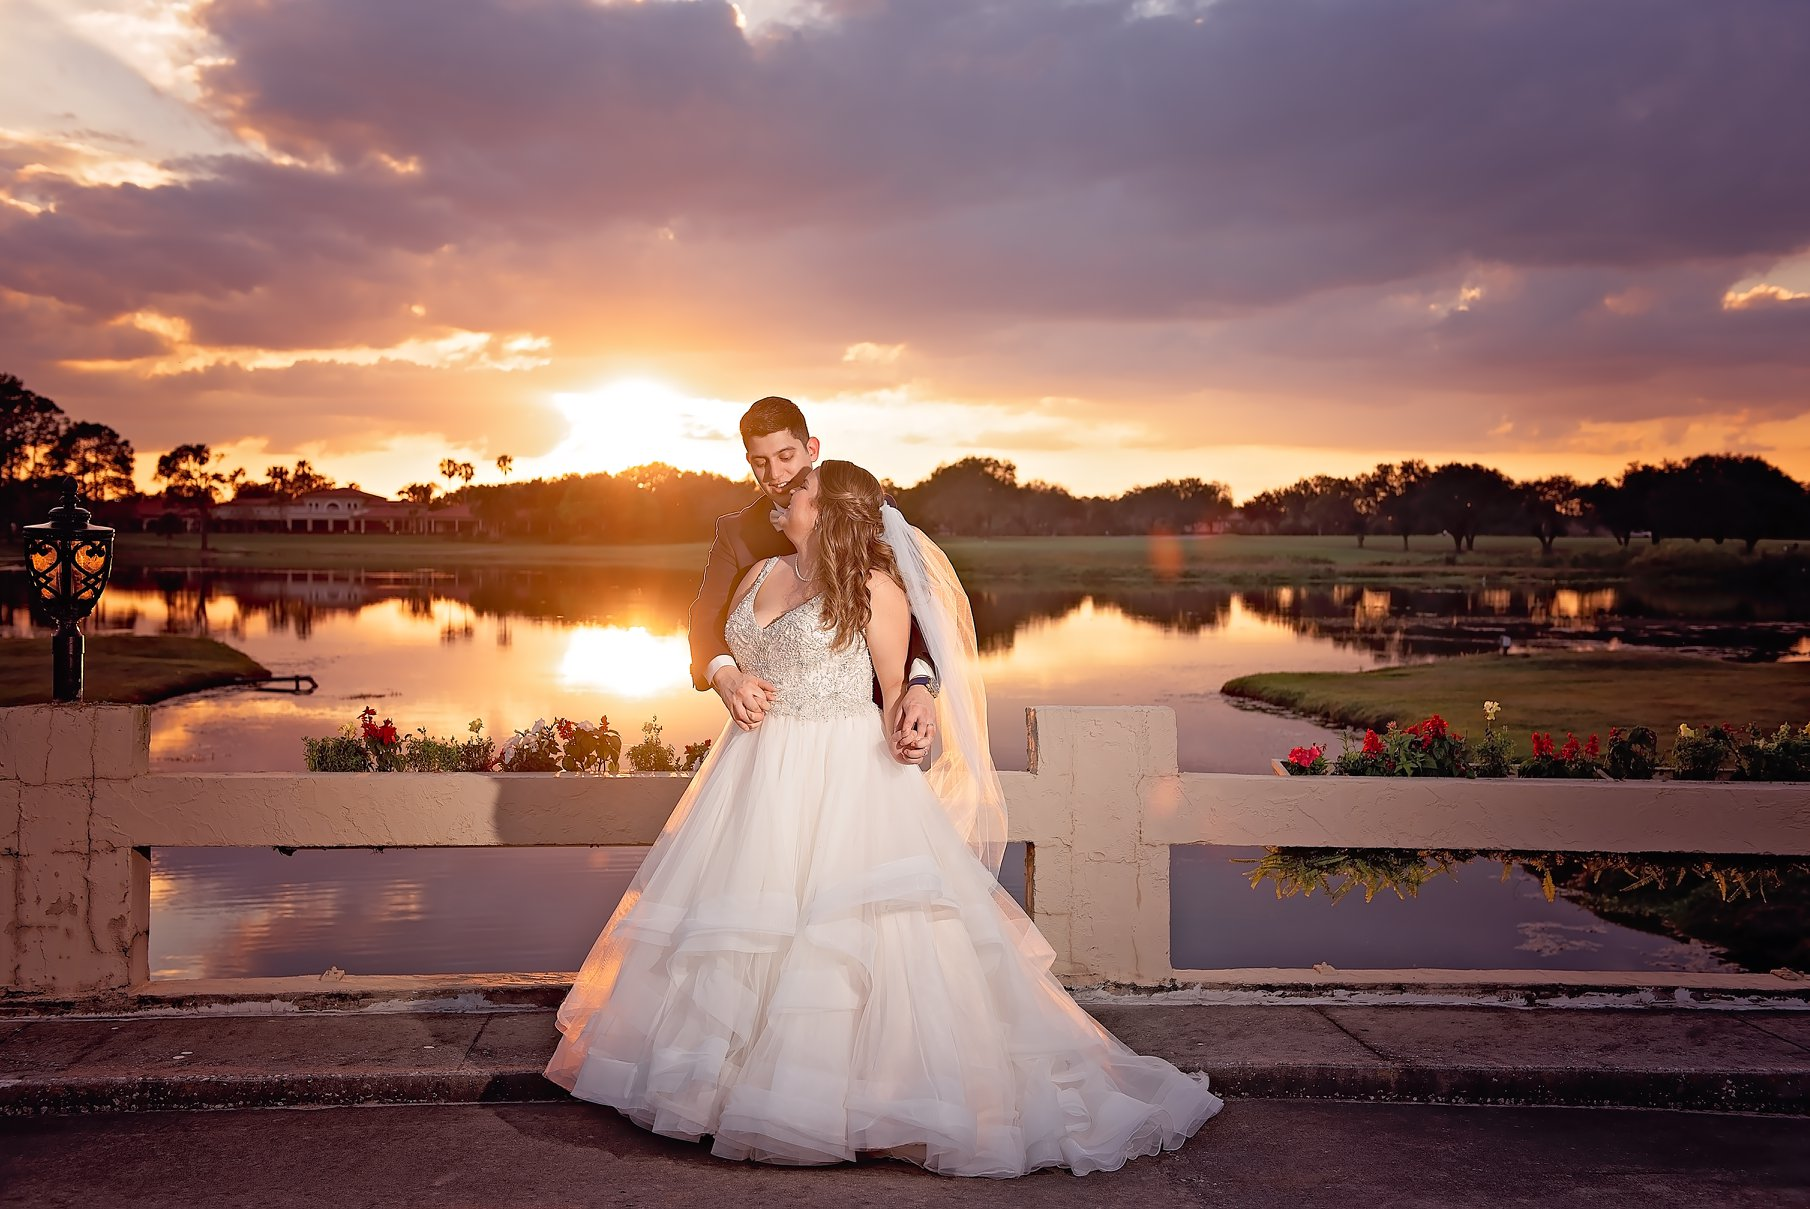 Gorgeous portrait of bride and groom on sunset bridge at sunset